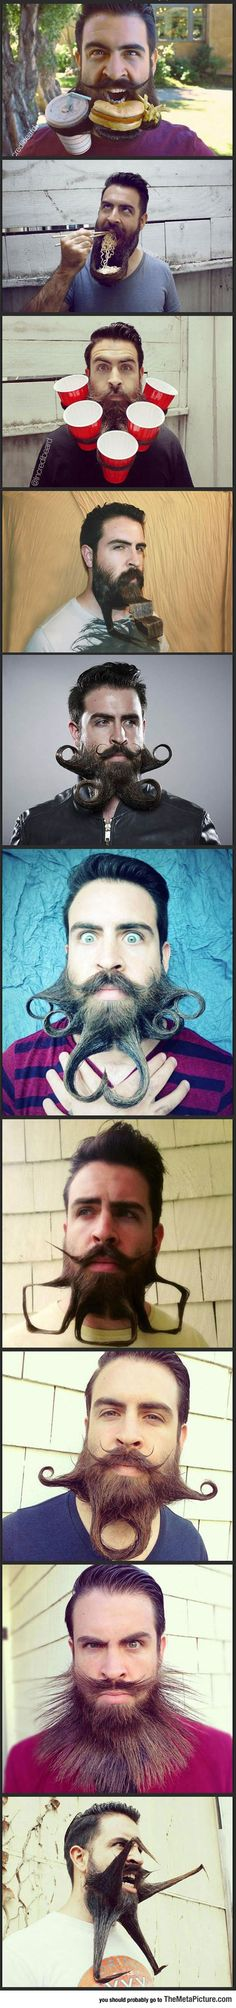 Funny Pictures: Meet Crazy Beard Guy  Ok this might not quite count, but it is pretty funny.